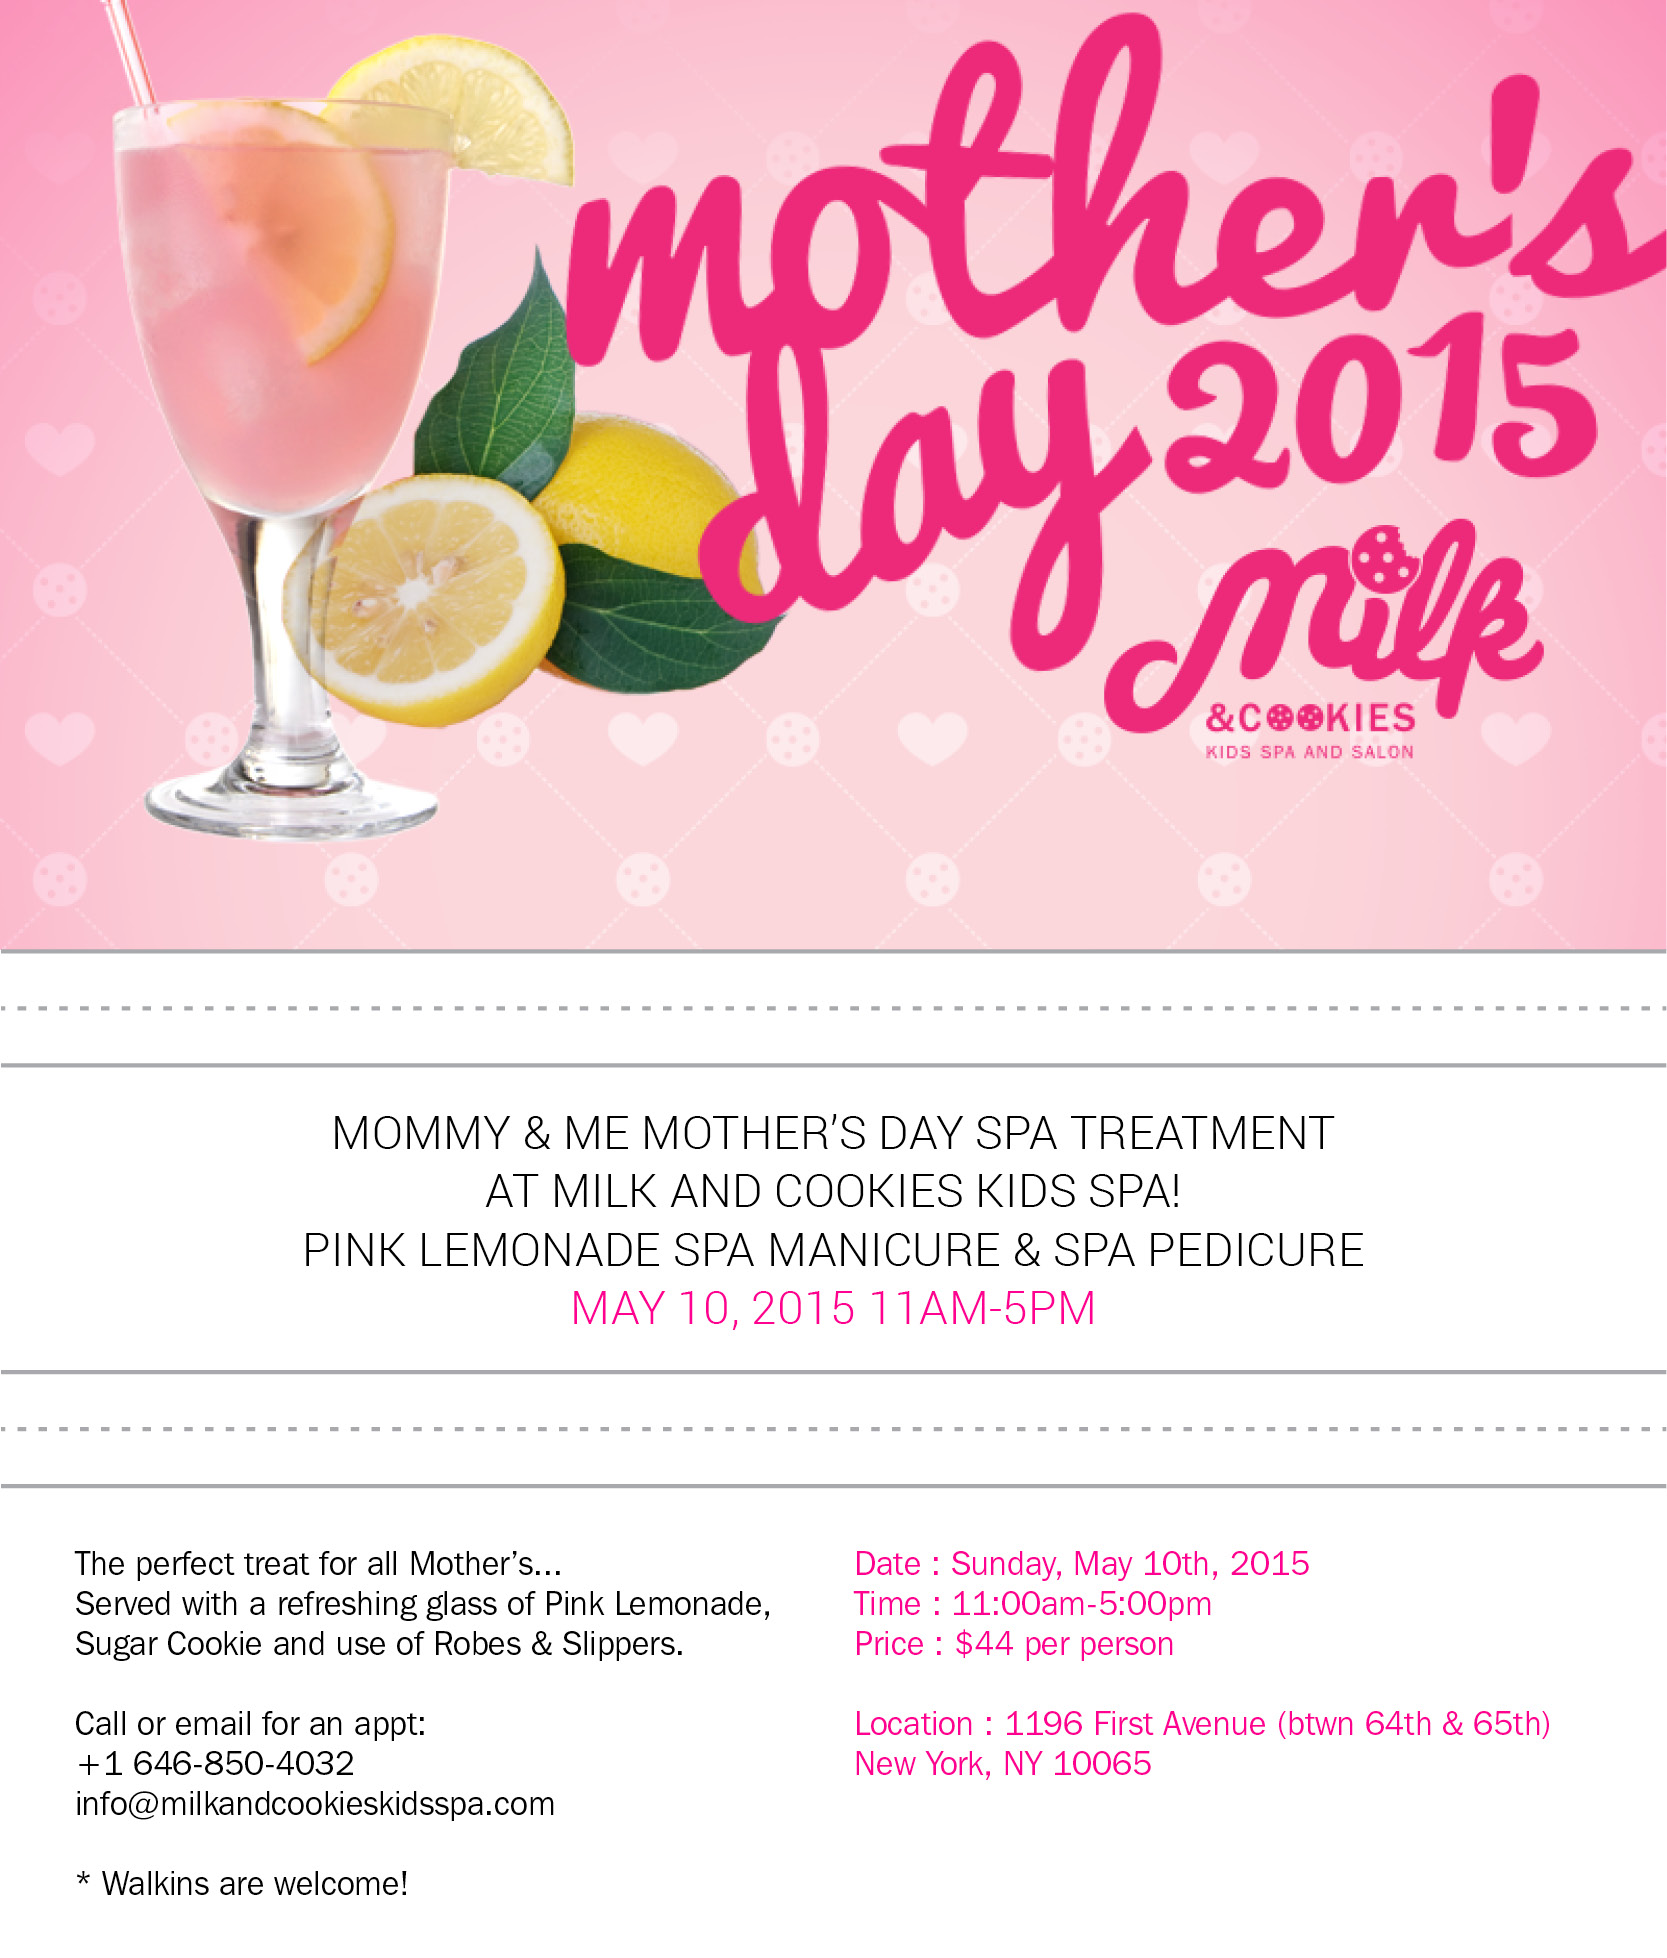 Milk and Cookies Spa Mother's Day Event